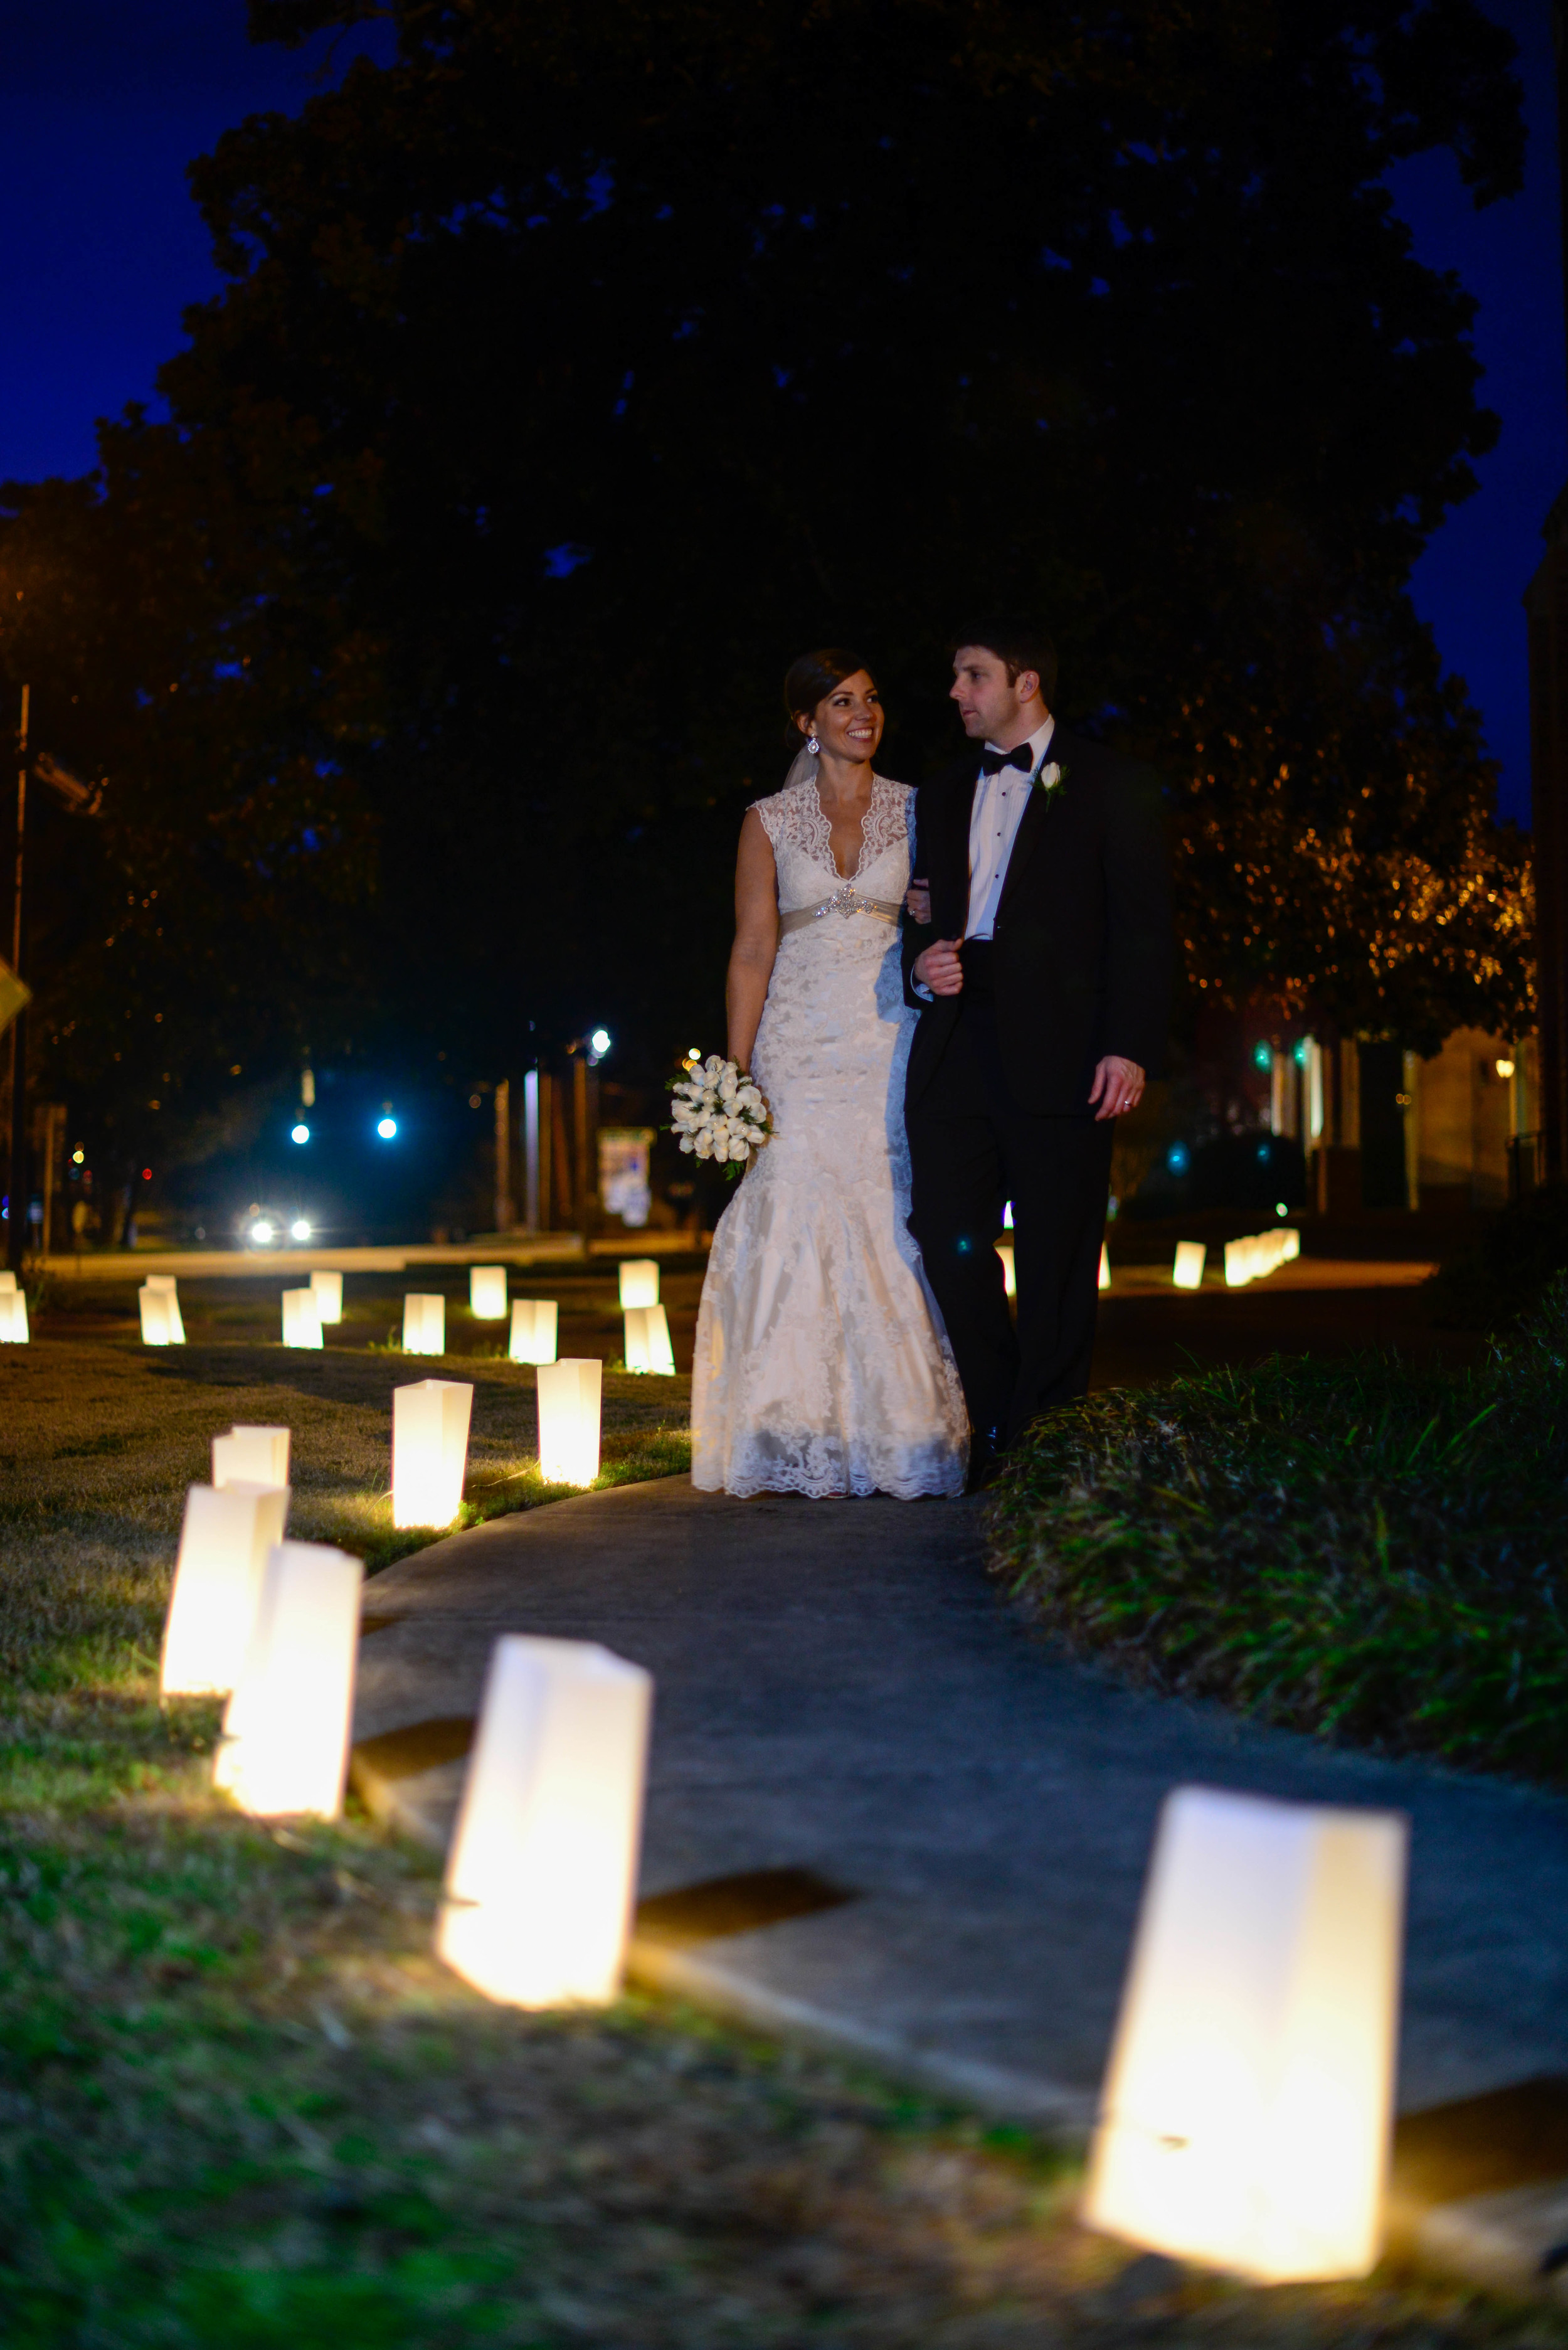 The lantern walkway leading into the church was a romantic touch for the evening of the Wedding.